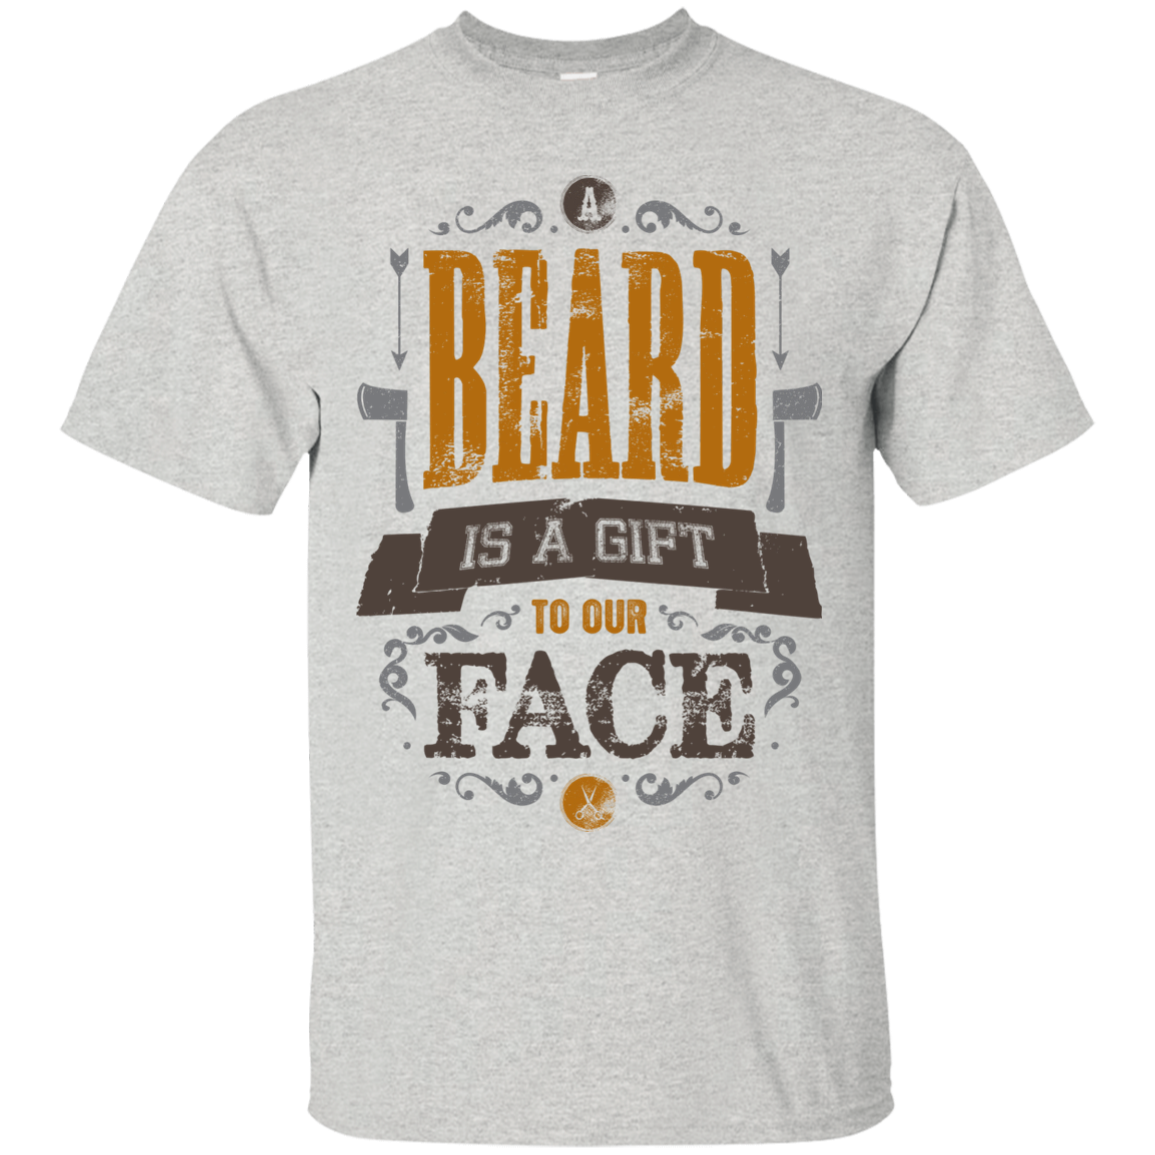 A BEARD IS A GIFT TO OUR FACE T-Shirt Hoodie Long sleeve Sweatshirt